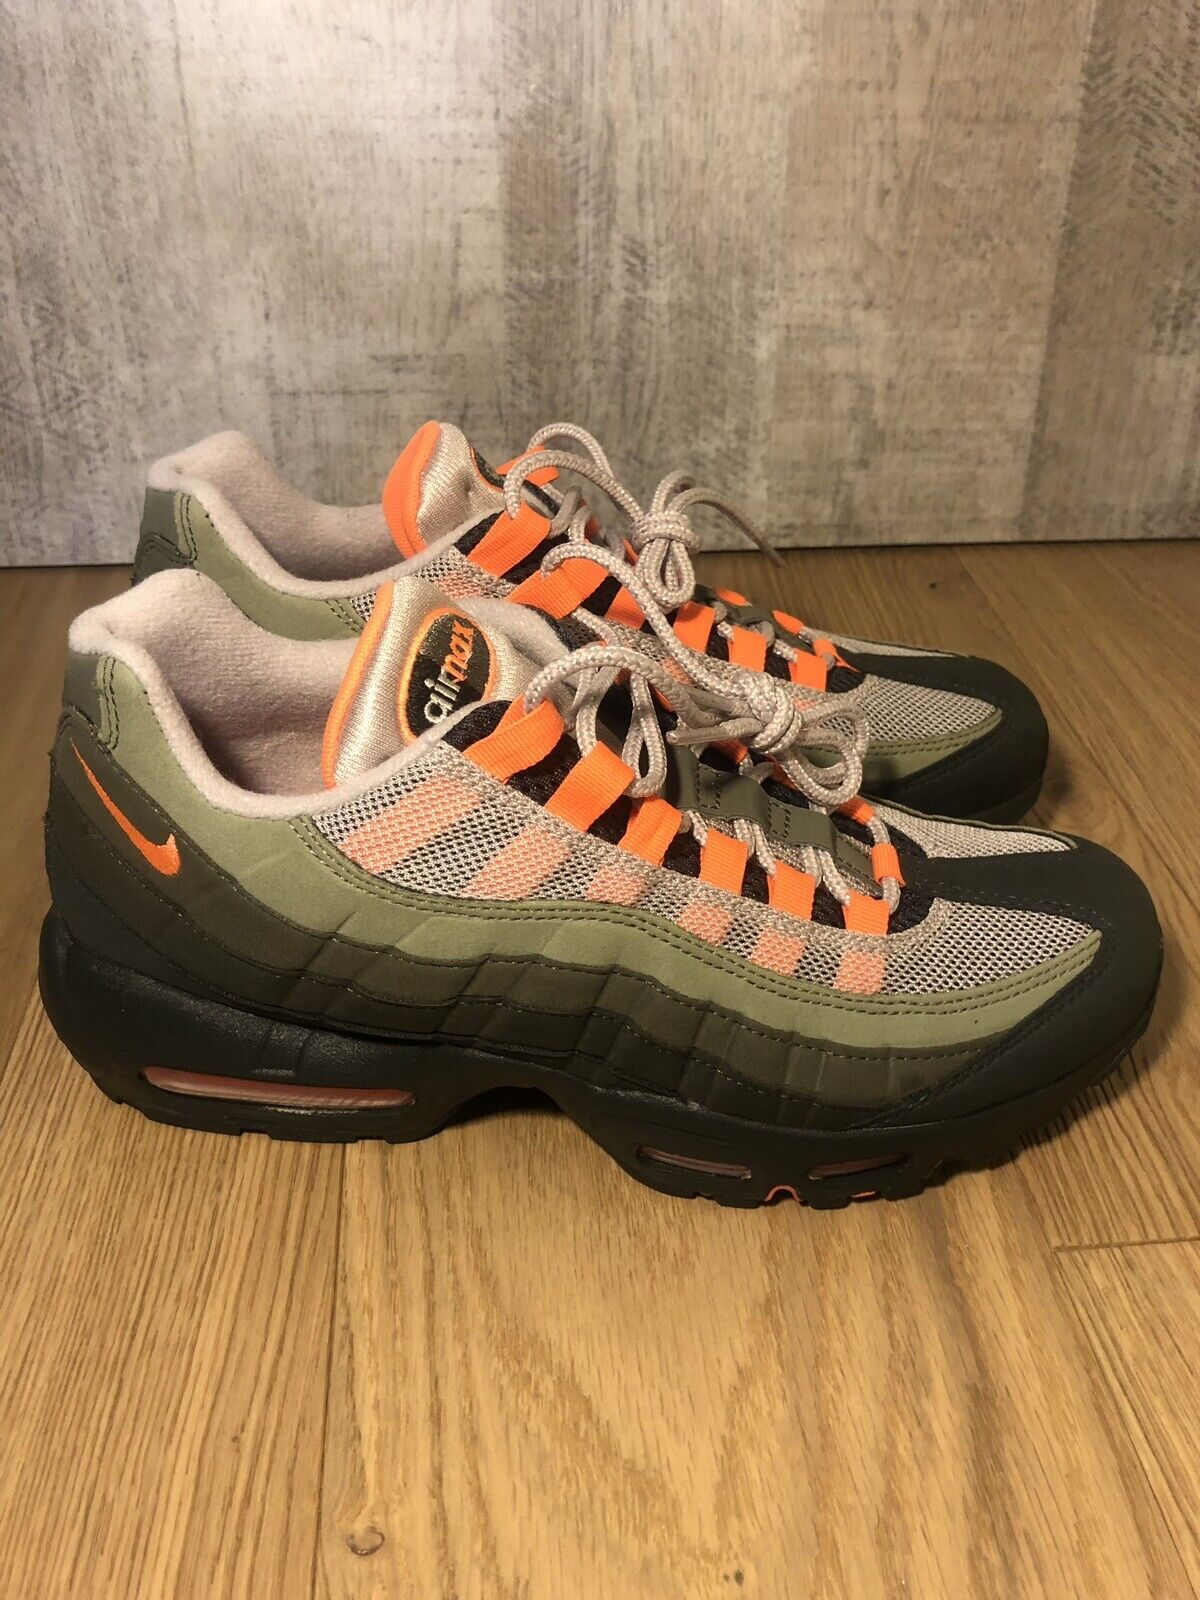 meet f23d9 b3cba NIKE AIR MAX 95 OG NEUTRAL OLIVE AT2865-200 STRING TOTAL orange SIZE 8